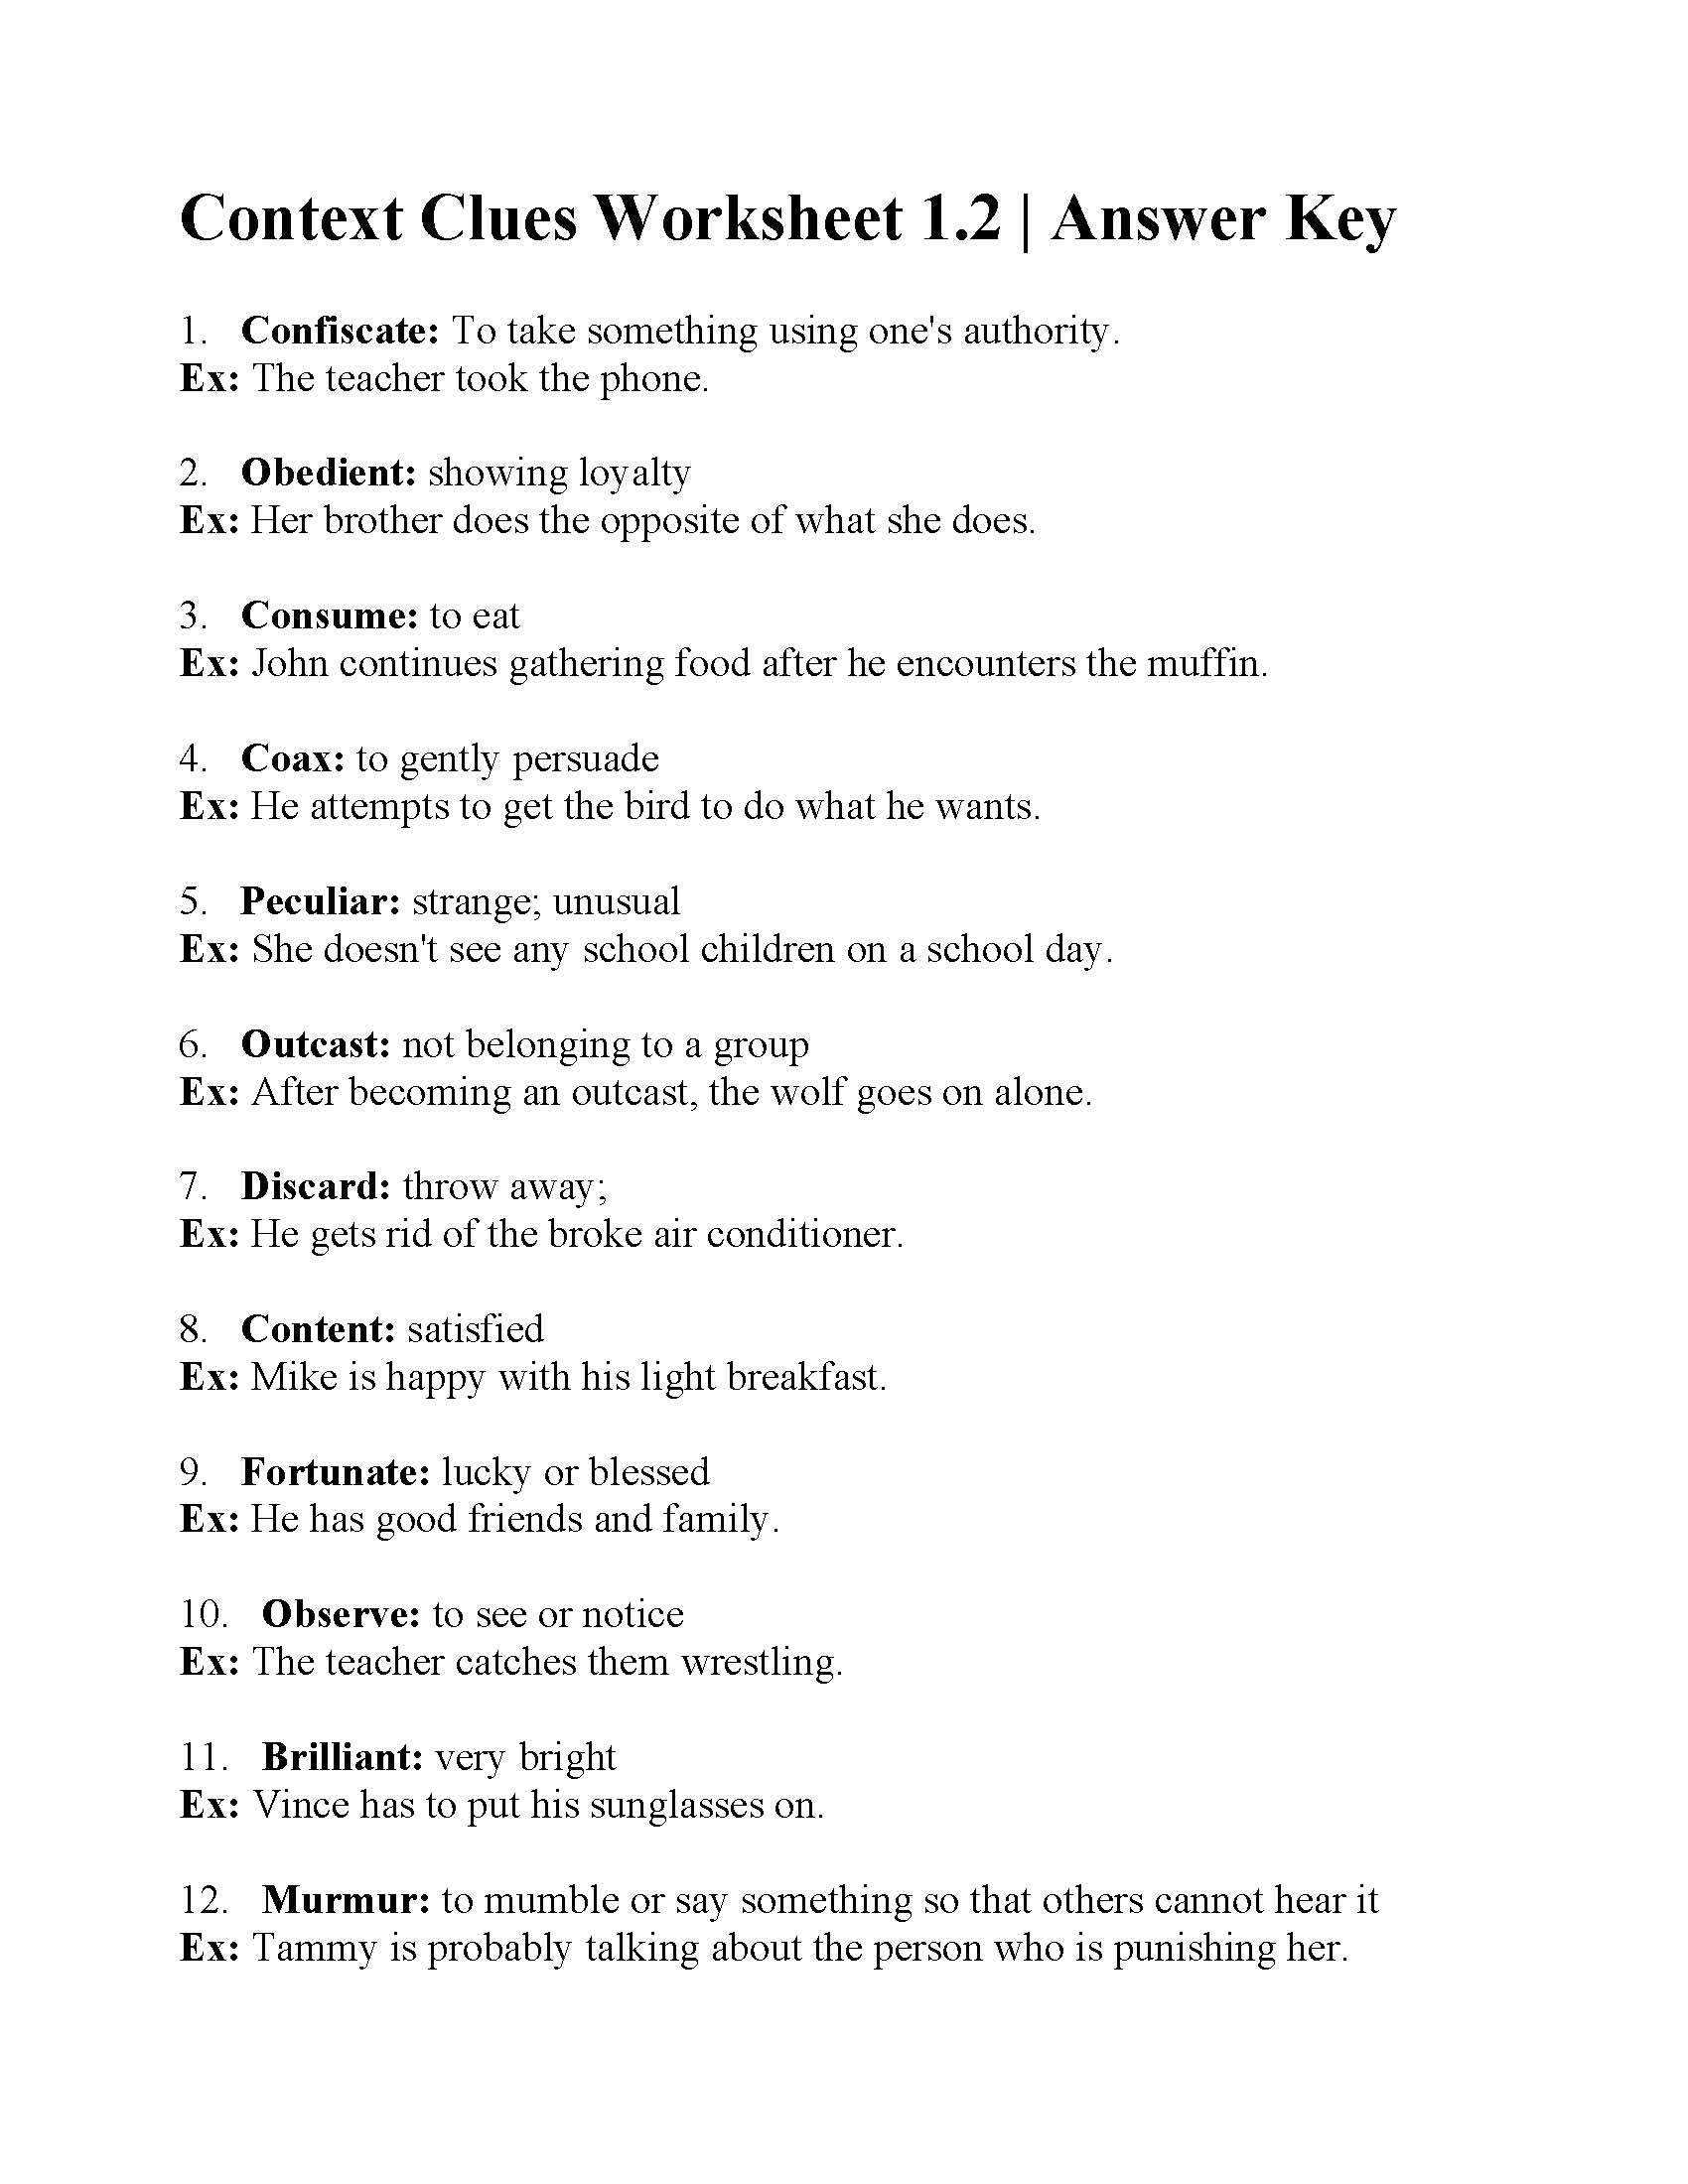 Context Clues Worksheet 1.2 | Answers